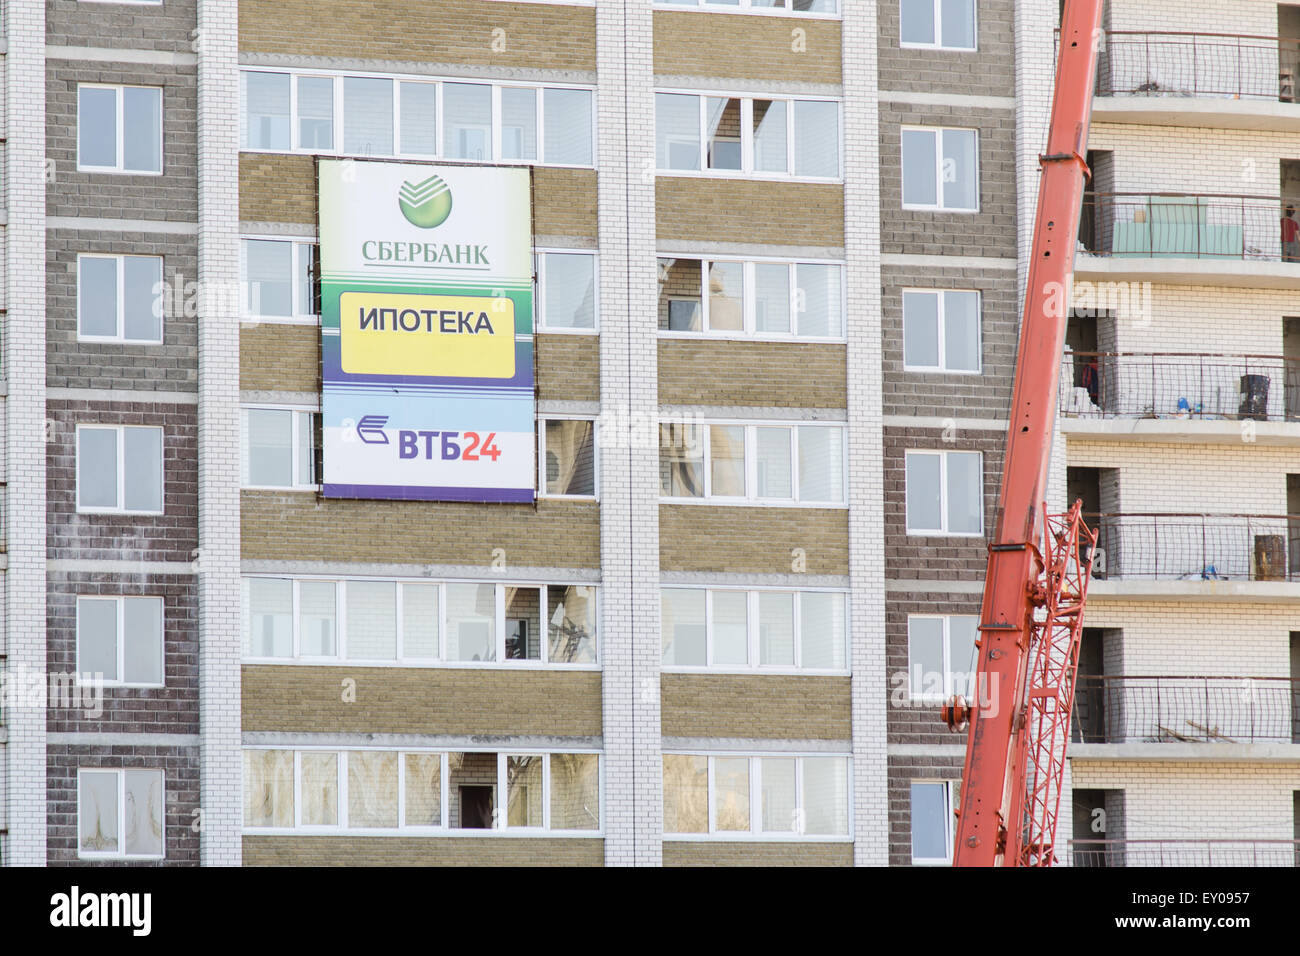 Unfinished multi-storey residential building with an advertising banner mortgage Sberbank, VTB24 on the facade - Stock Image